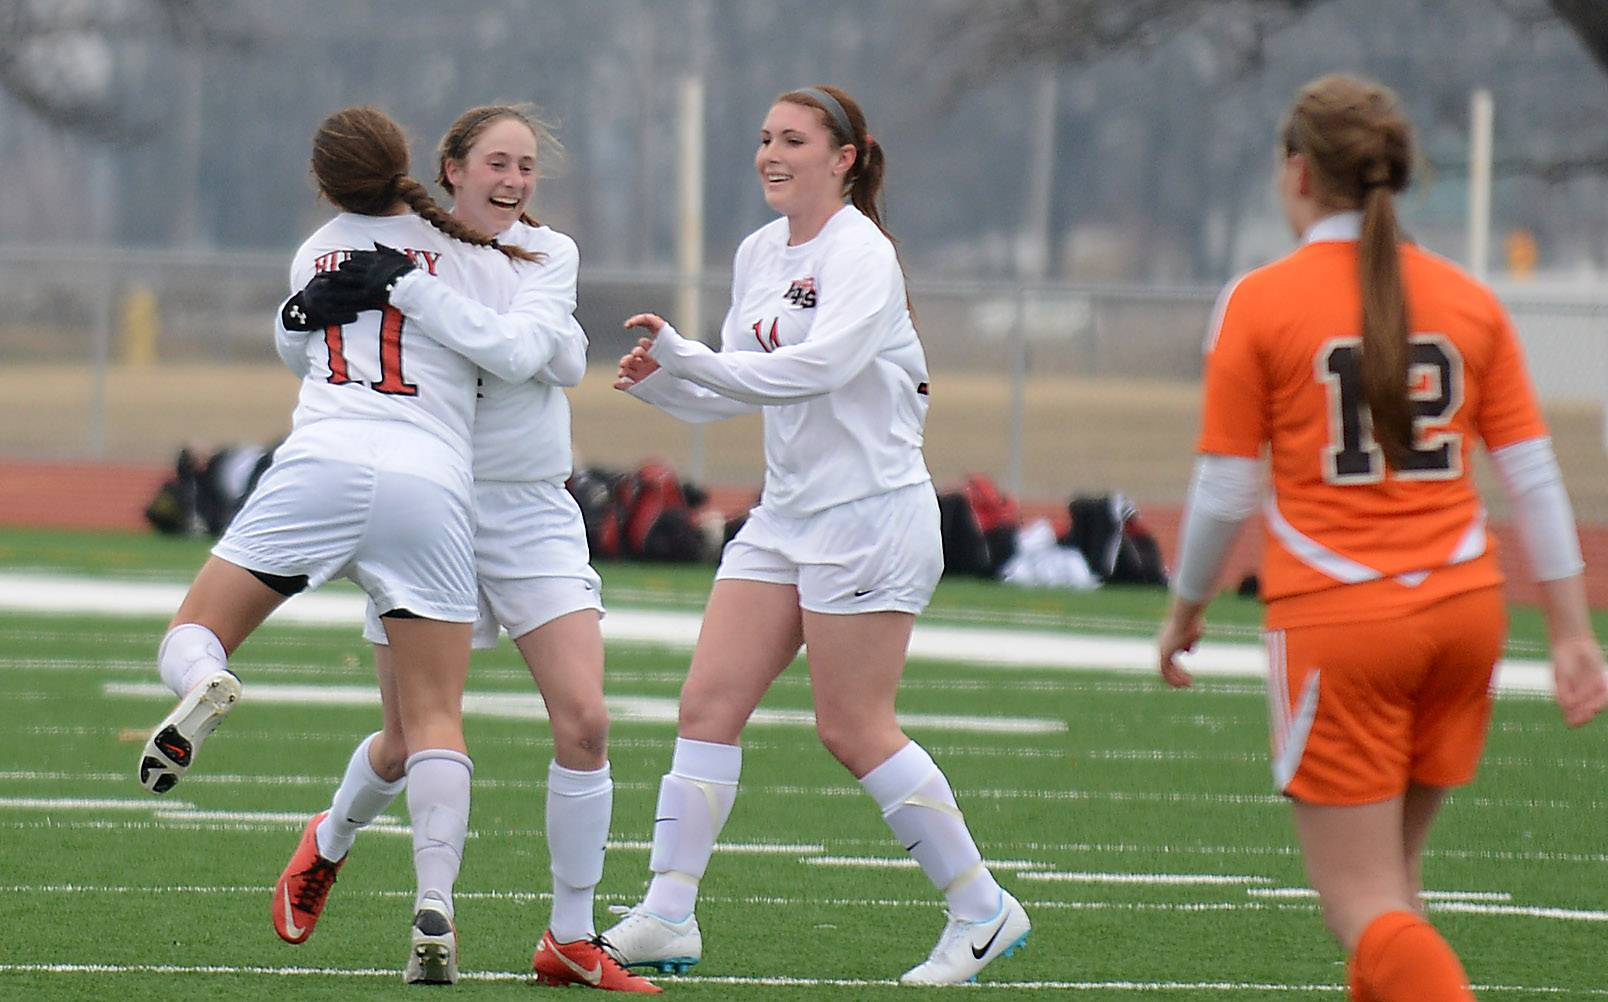 Huntley's Taryn Jakubowski (11) jumps into the arms of teammate Katie Costantino after scoring against Hersey during Friday's game in Huntley.